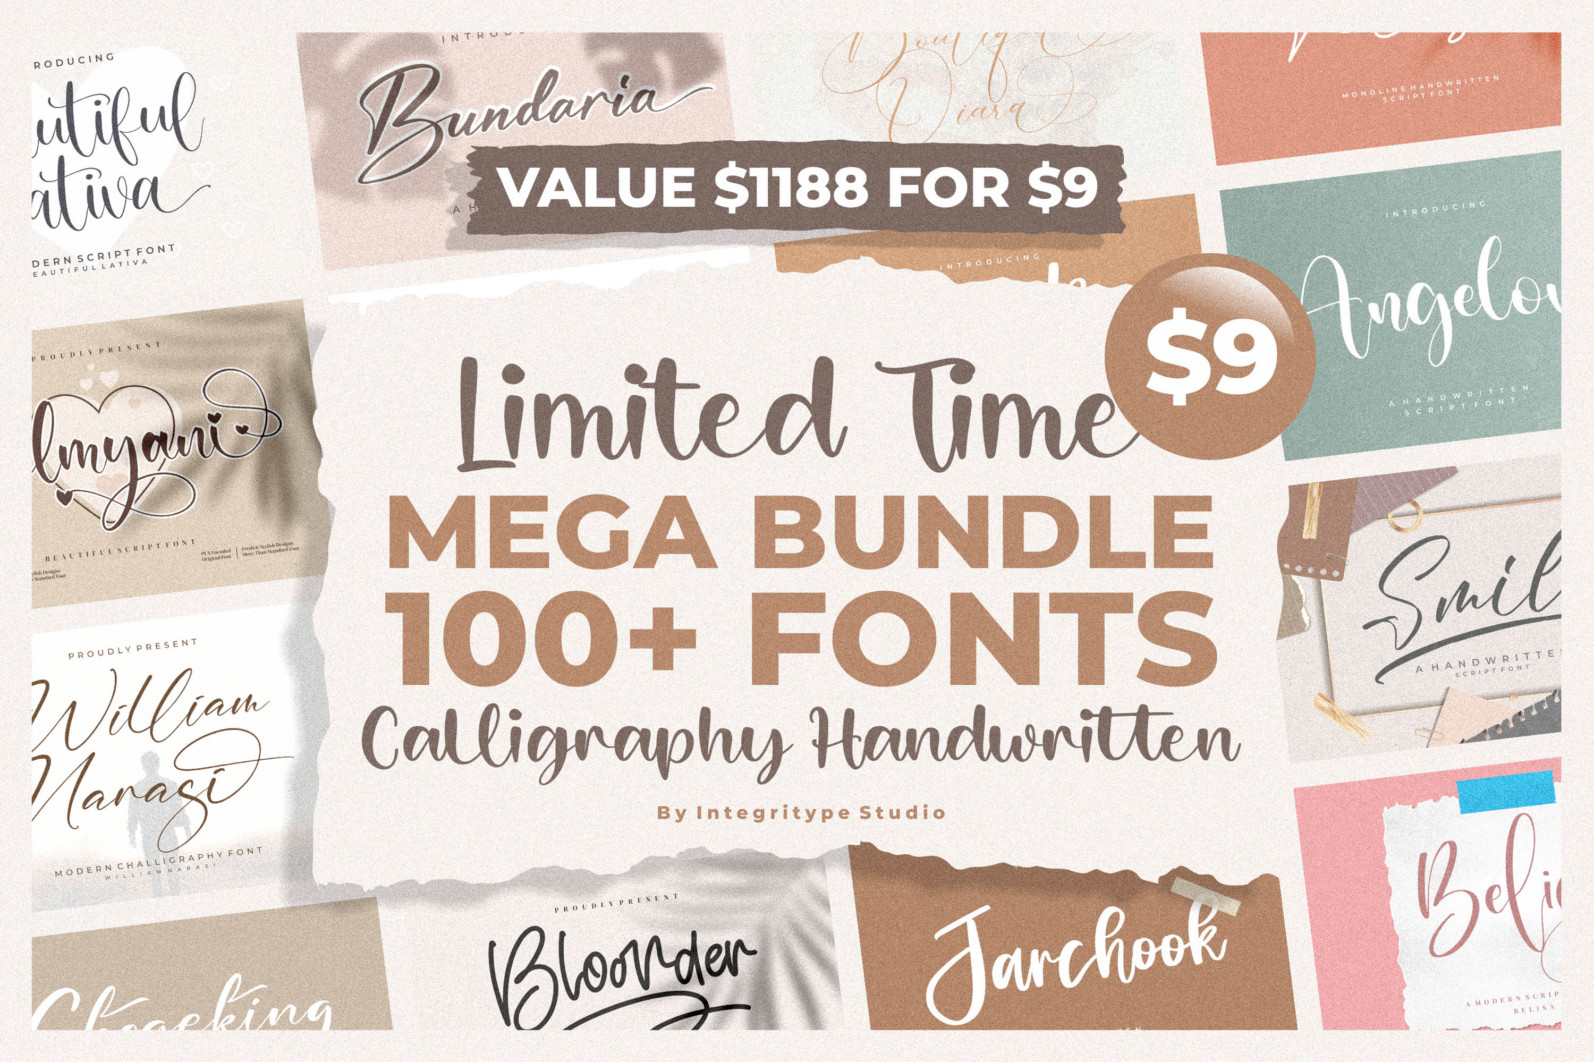 Spectacular All Collection Mega Font Bundle Handwritten - COVER1.png scaled -